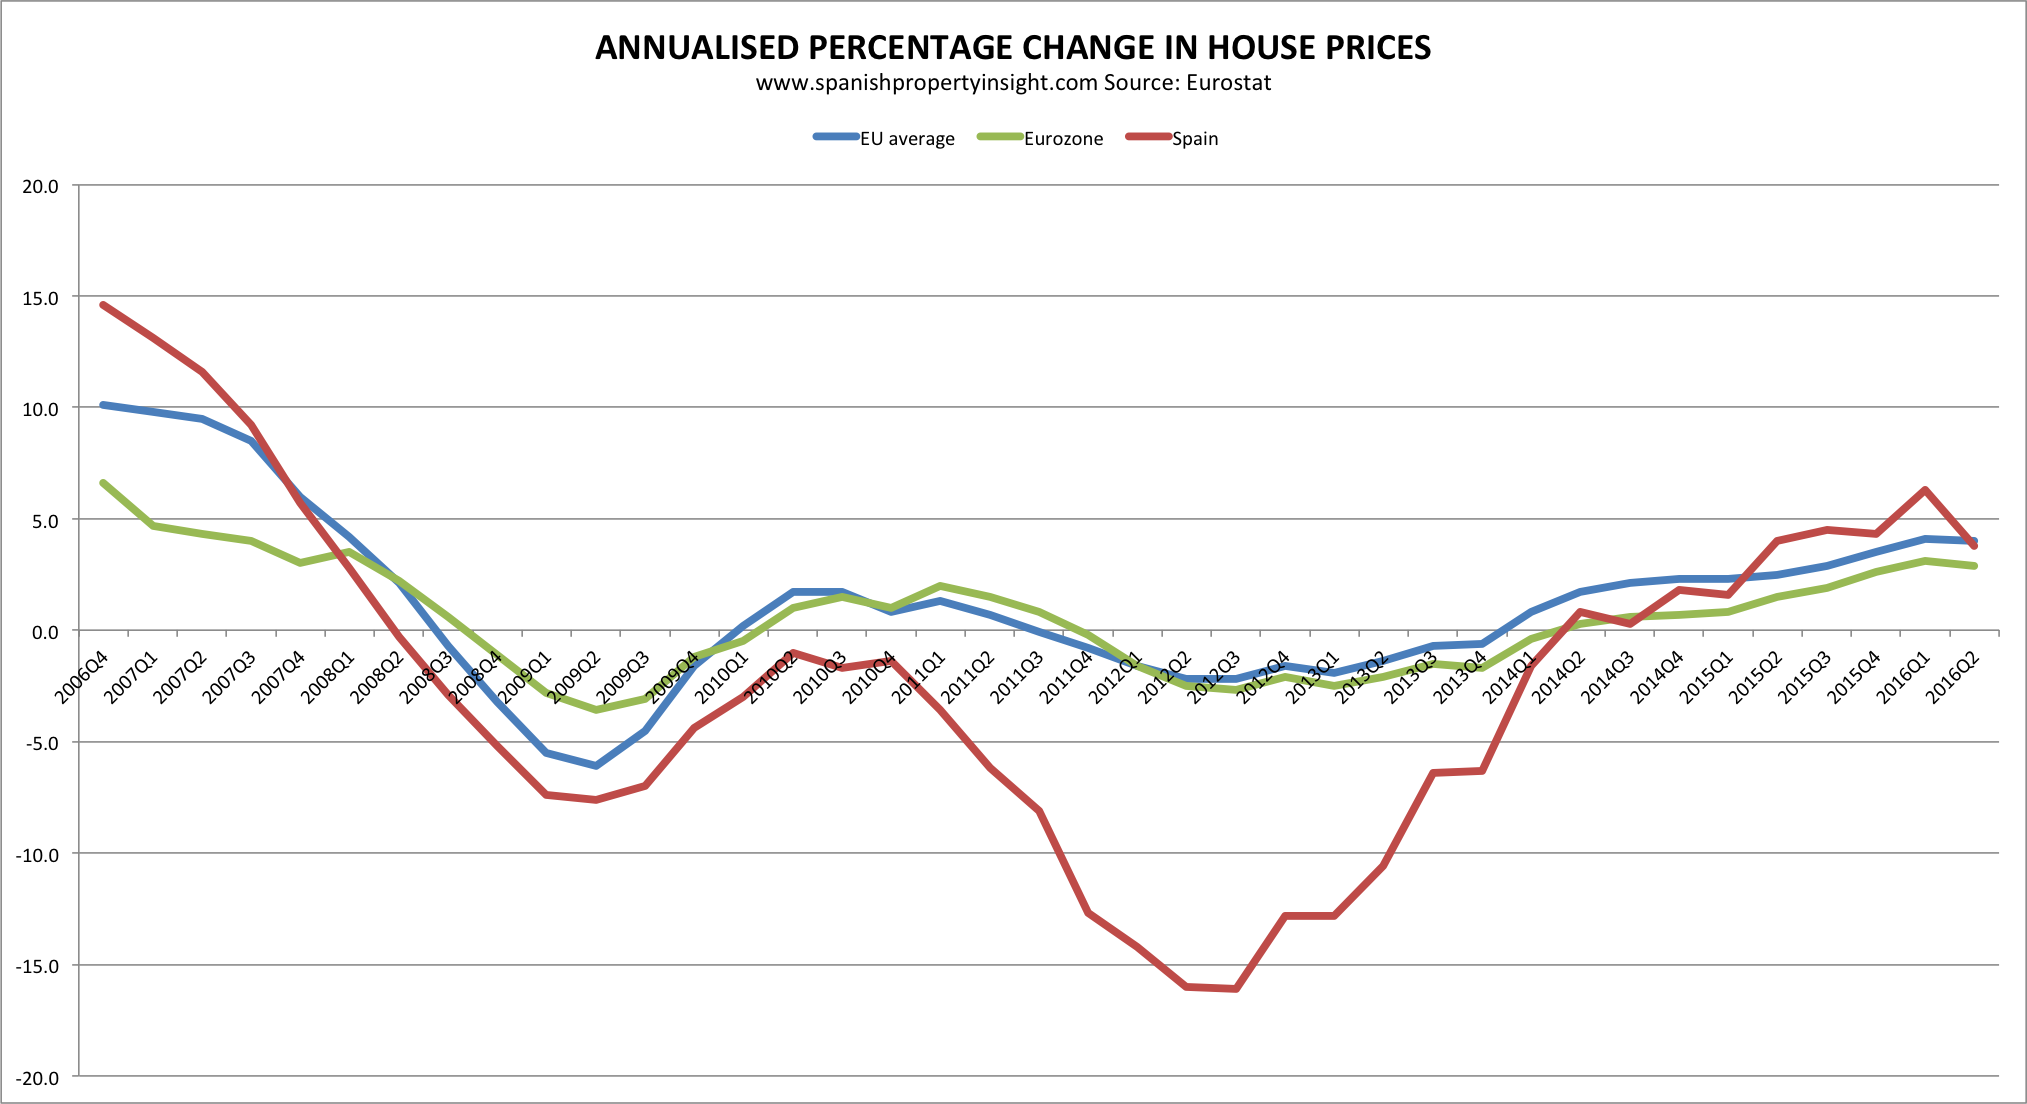 spanish and euro area house price change